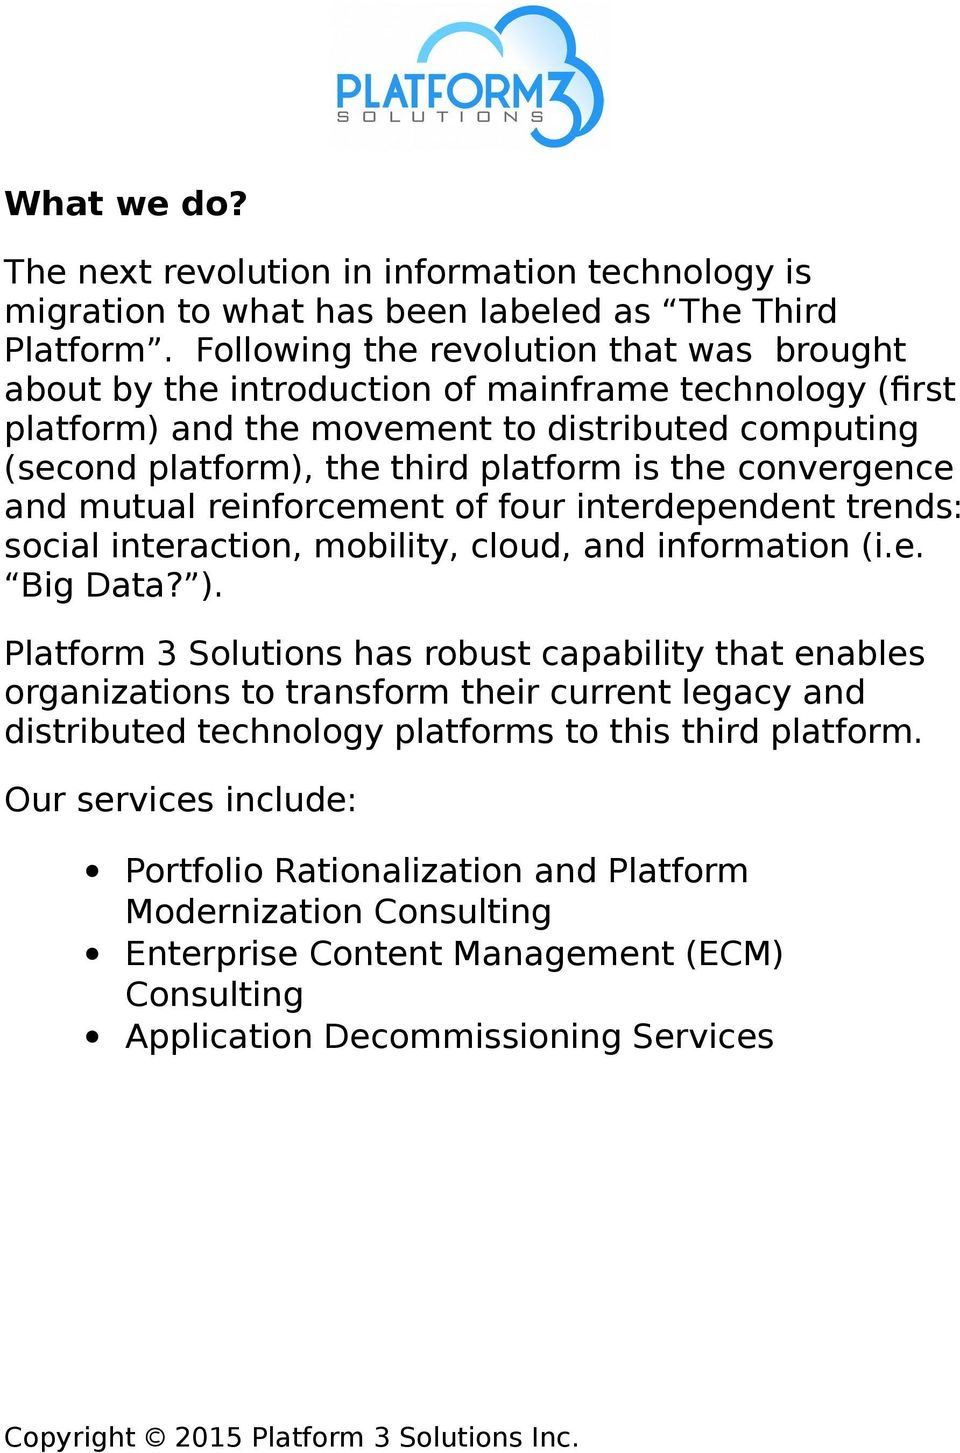 convergence and mutual reinforcement of four interdependent trends: social interaction, mobility, cloud, and information (i.e. Big Data? ).